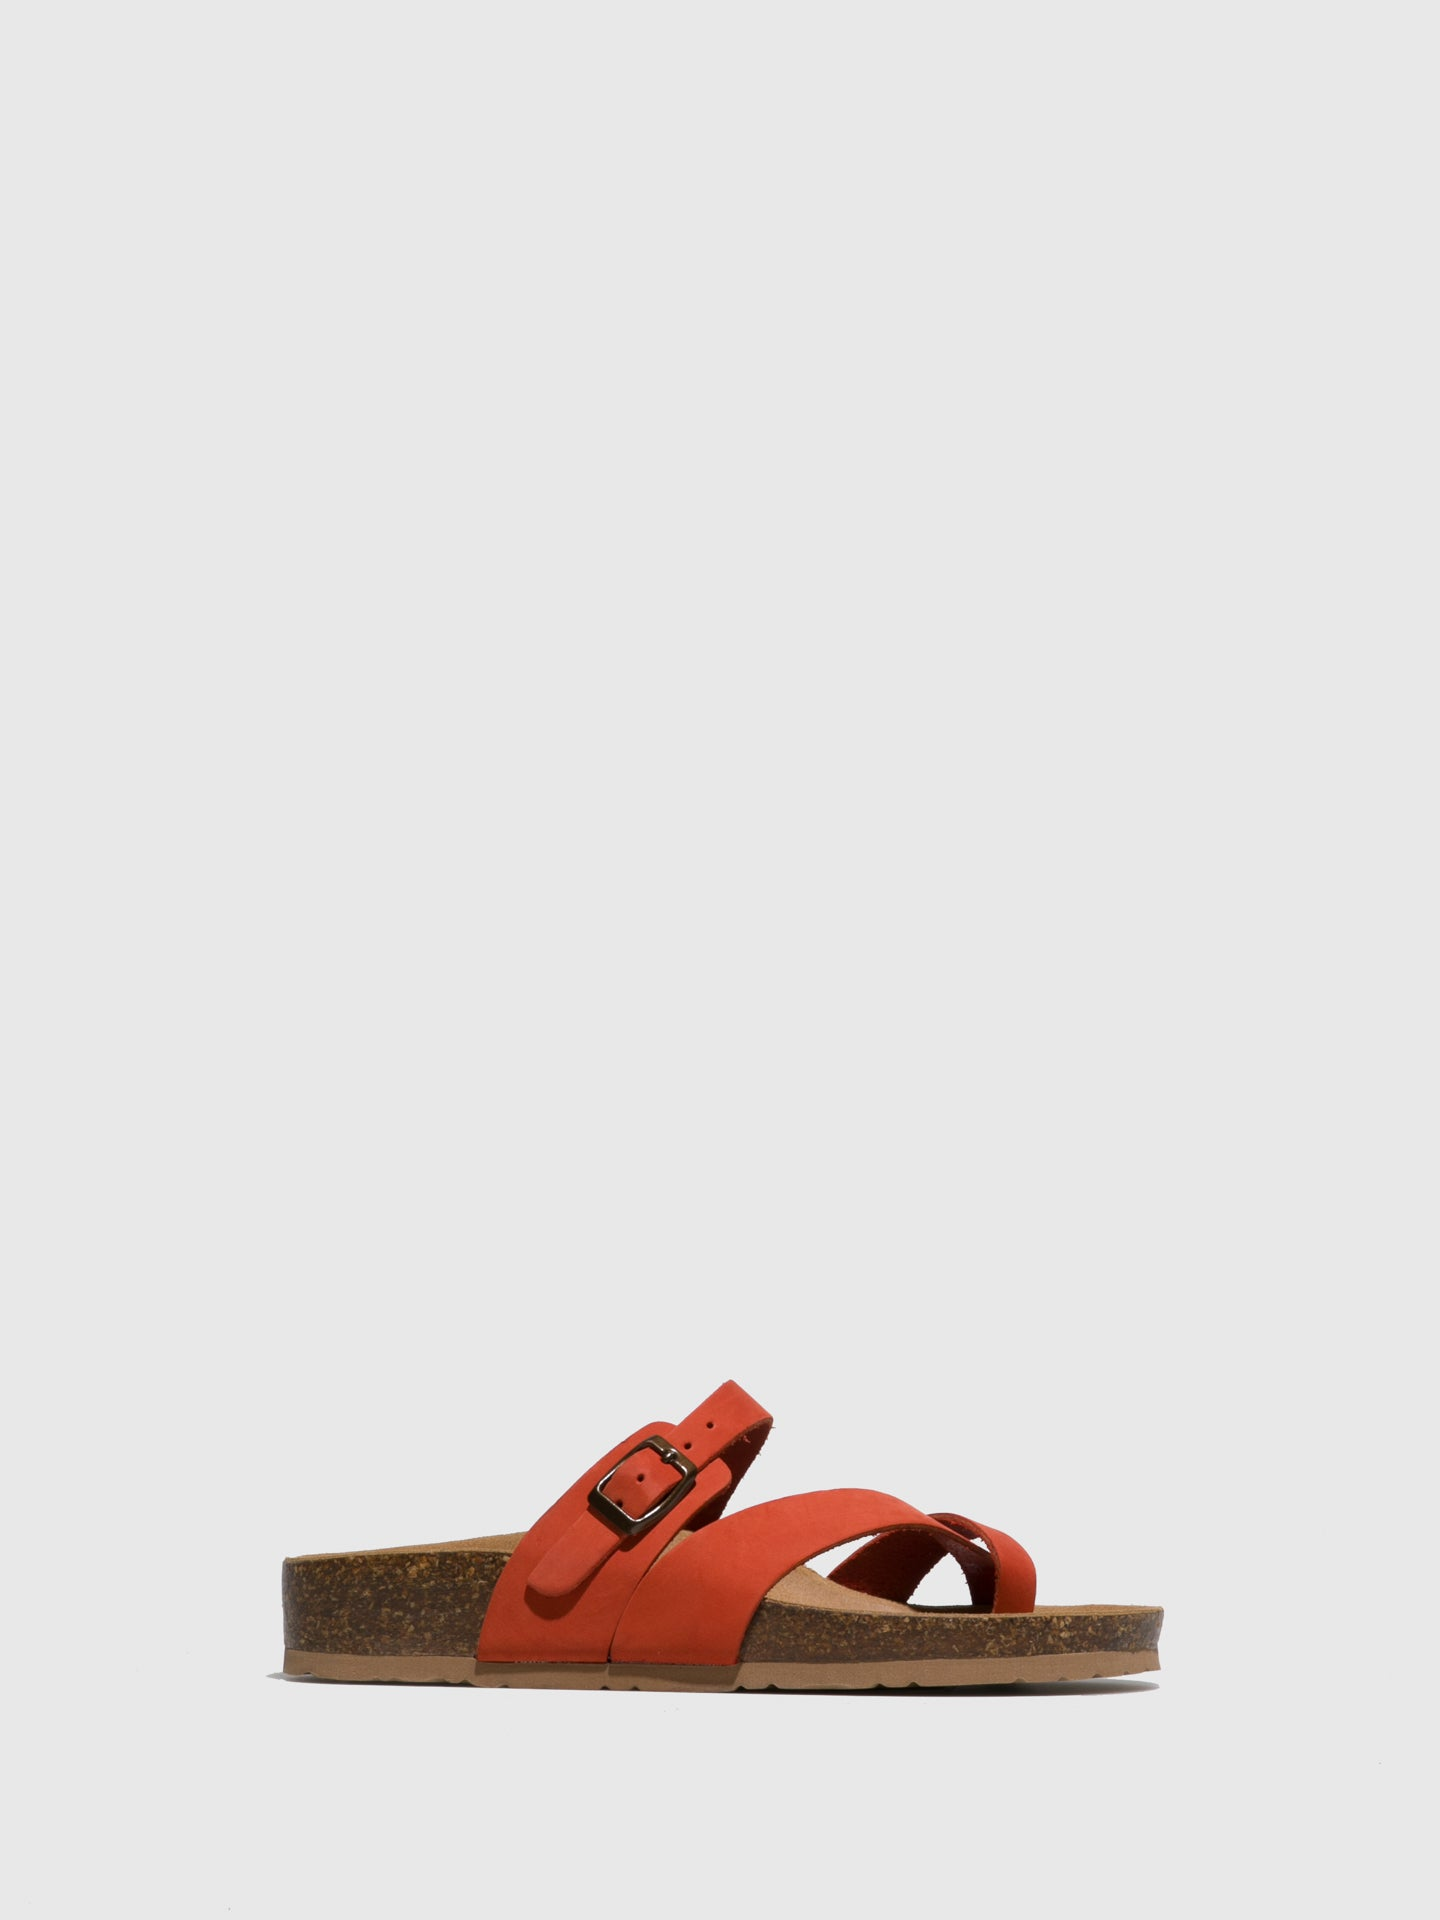 Bos&Co Orange Thong Sandals